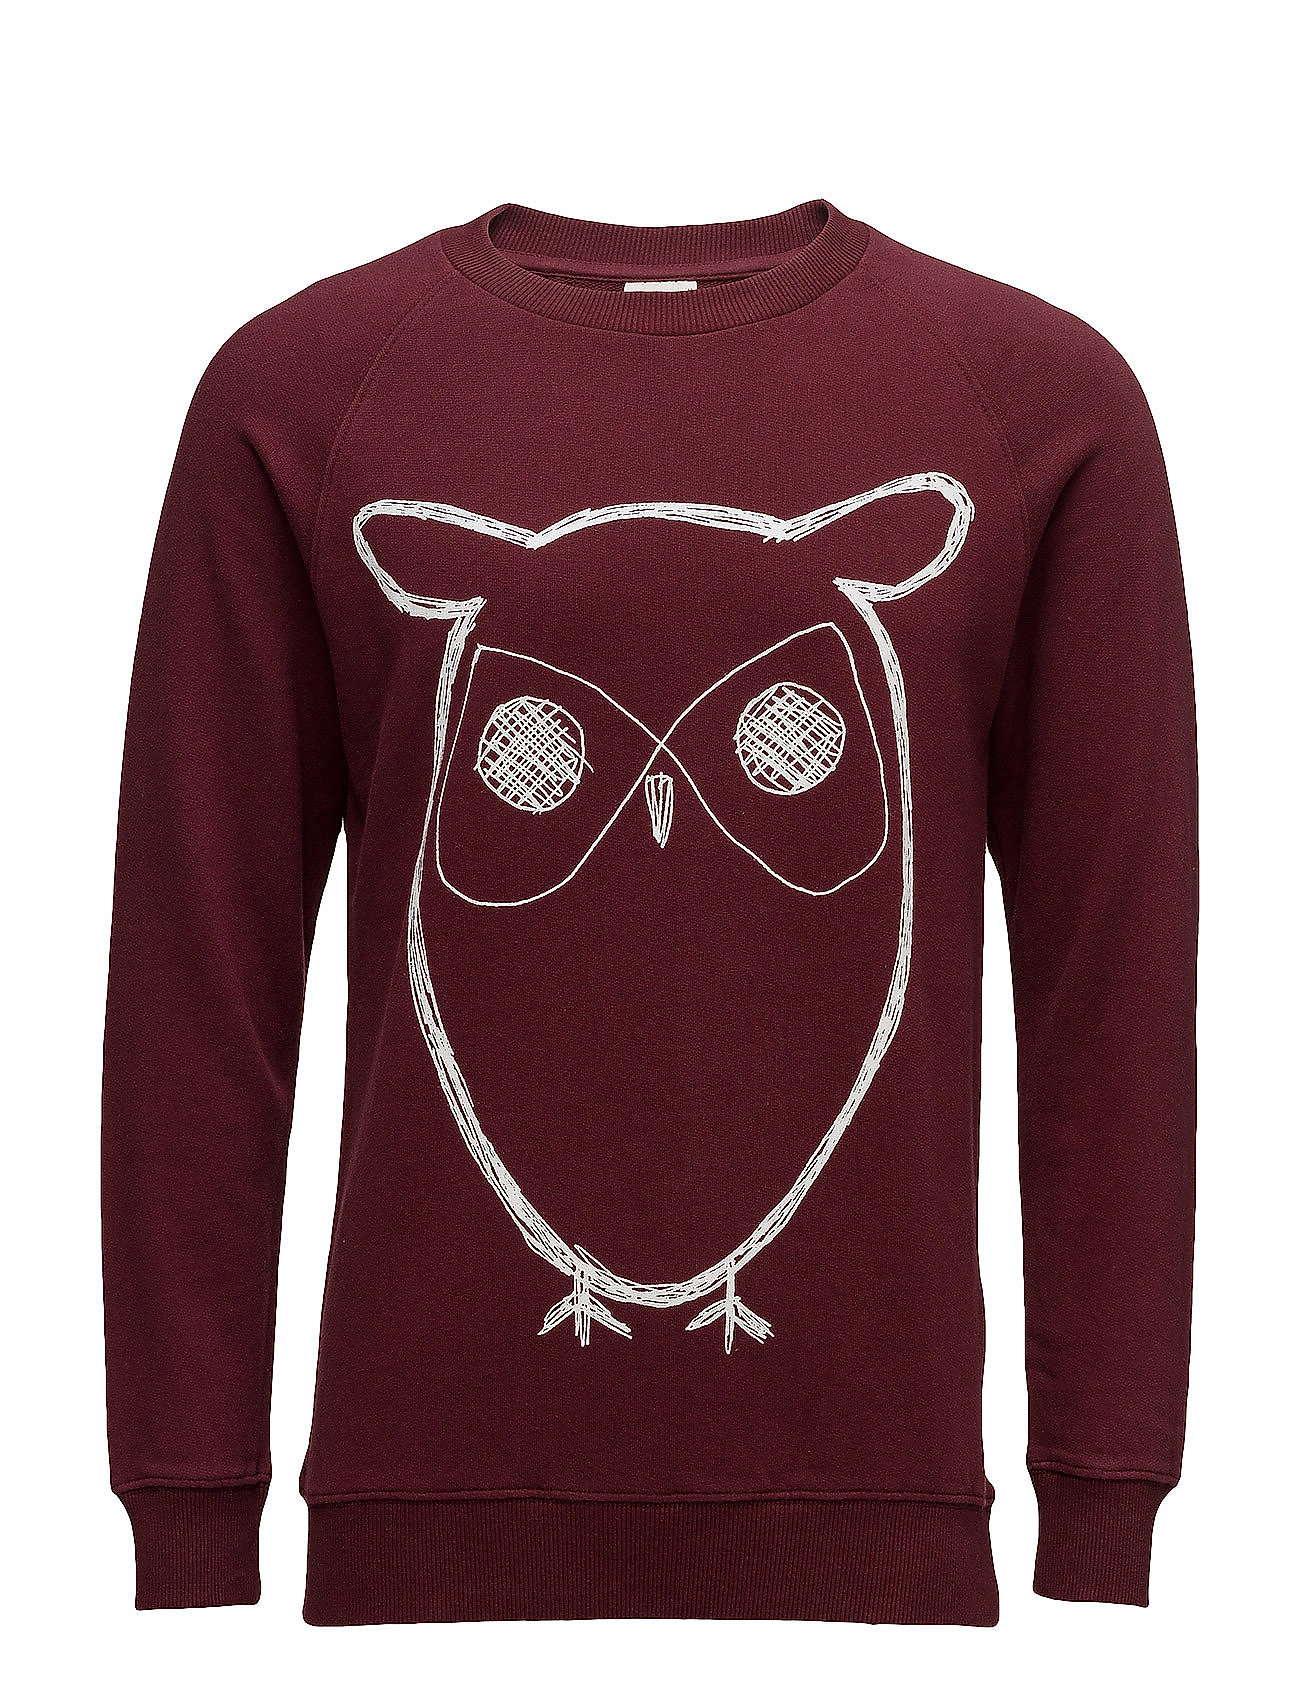 Sweat Shirt With Owl Print - Gots thumbnail